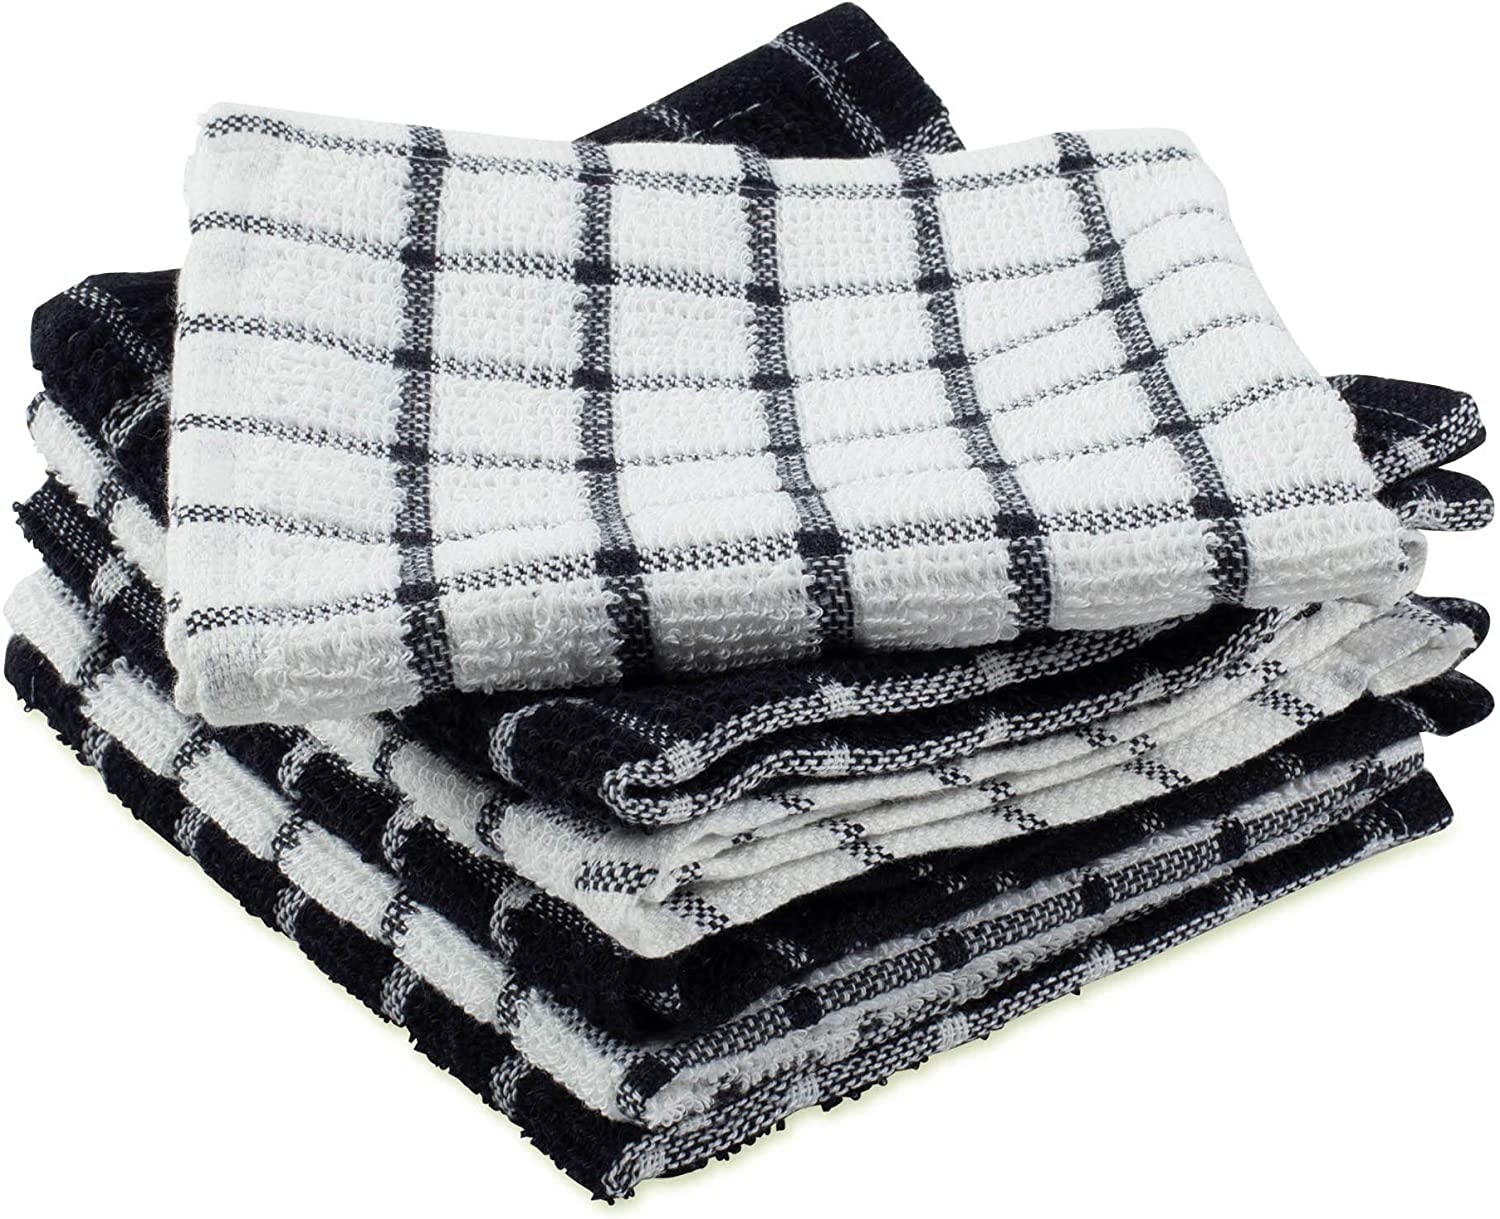 DII Cotton Terry Windowpane Dish Cloths 12 x 12 Set of 6 Machine Washable and Ultra Absorbent Kitchen Bar Towels-Solid Black